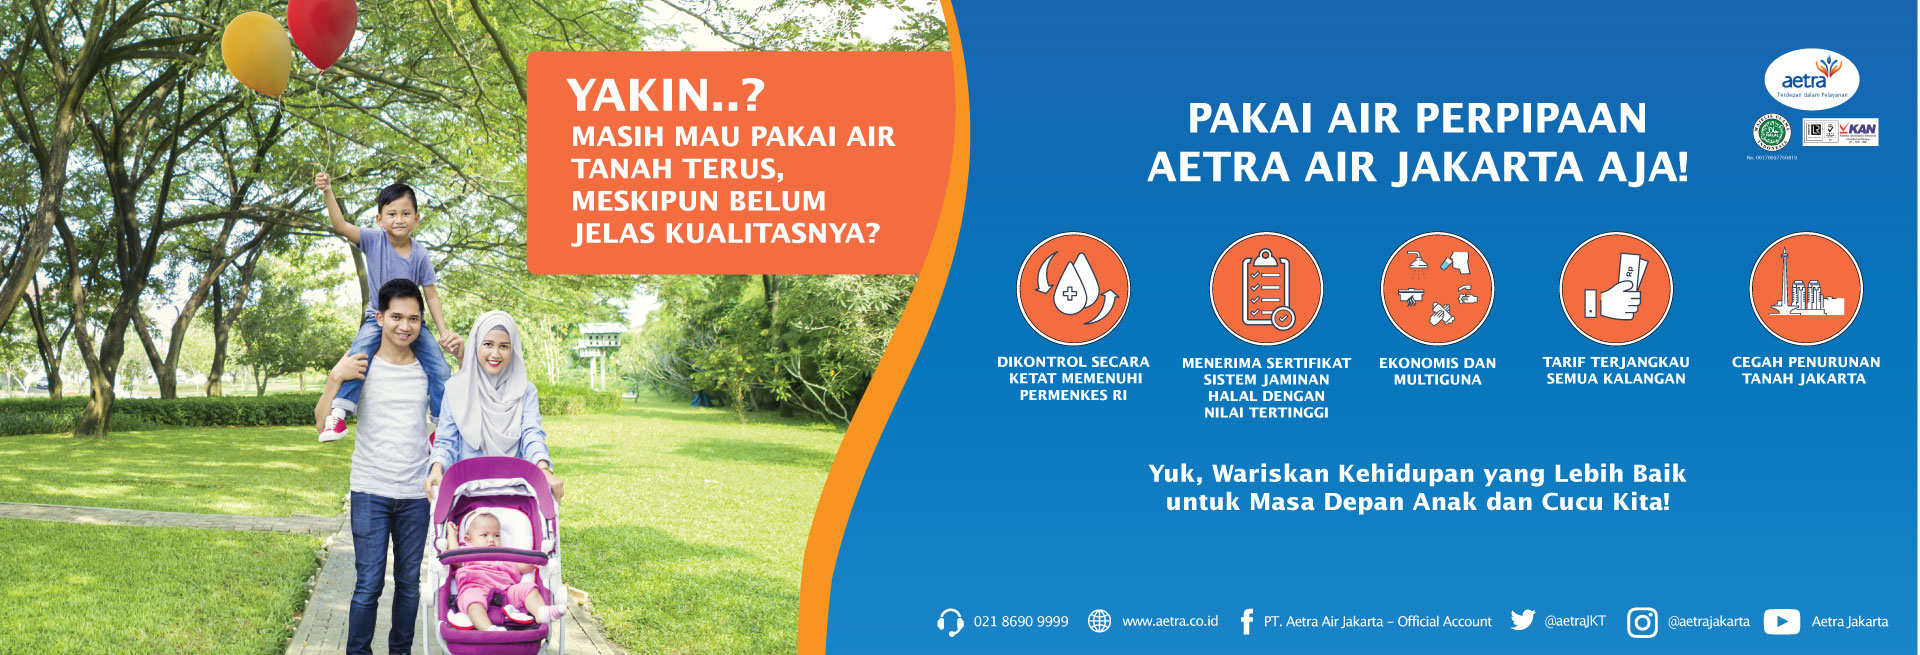 Web-Banner-Pakai-Air-Perpipaan-Aetra-FInal.jpg